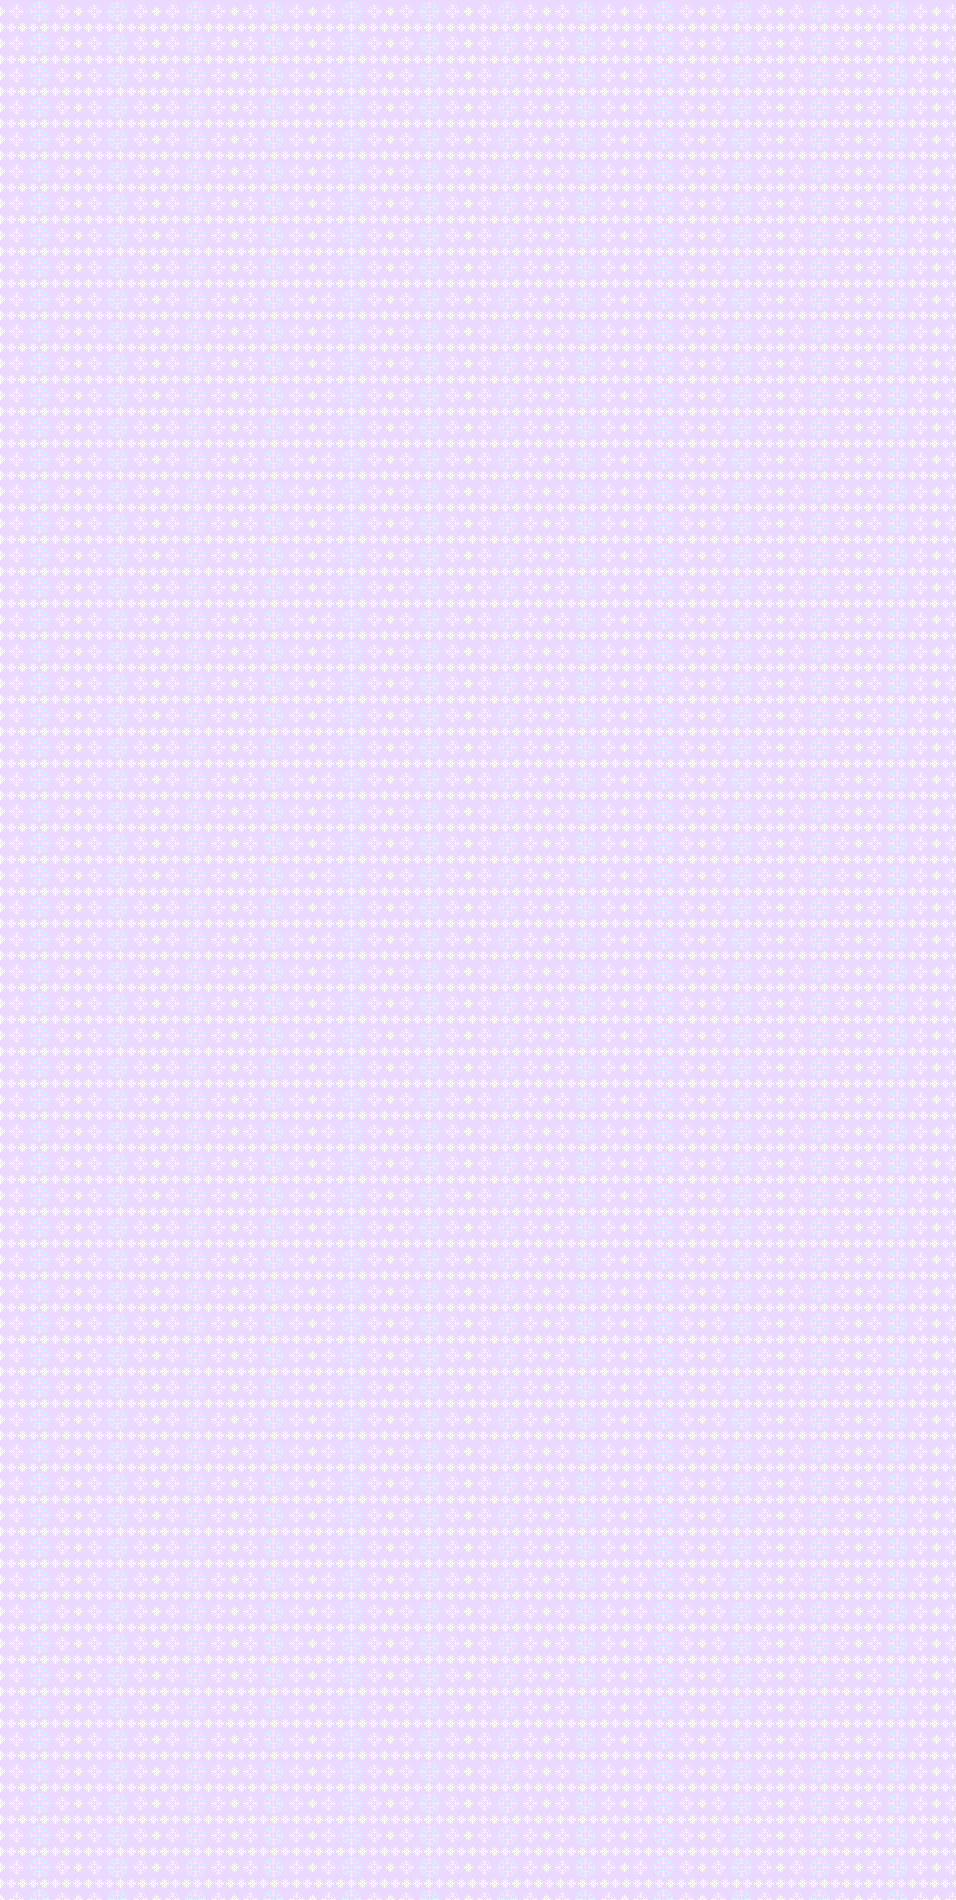 Free Pastel Purple Snowflakes Custom Box BG by cottoncritter